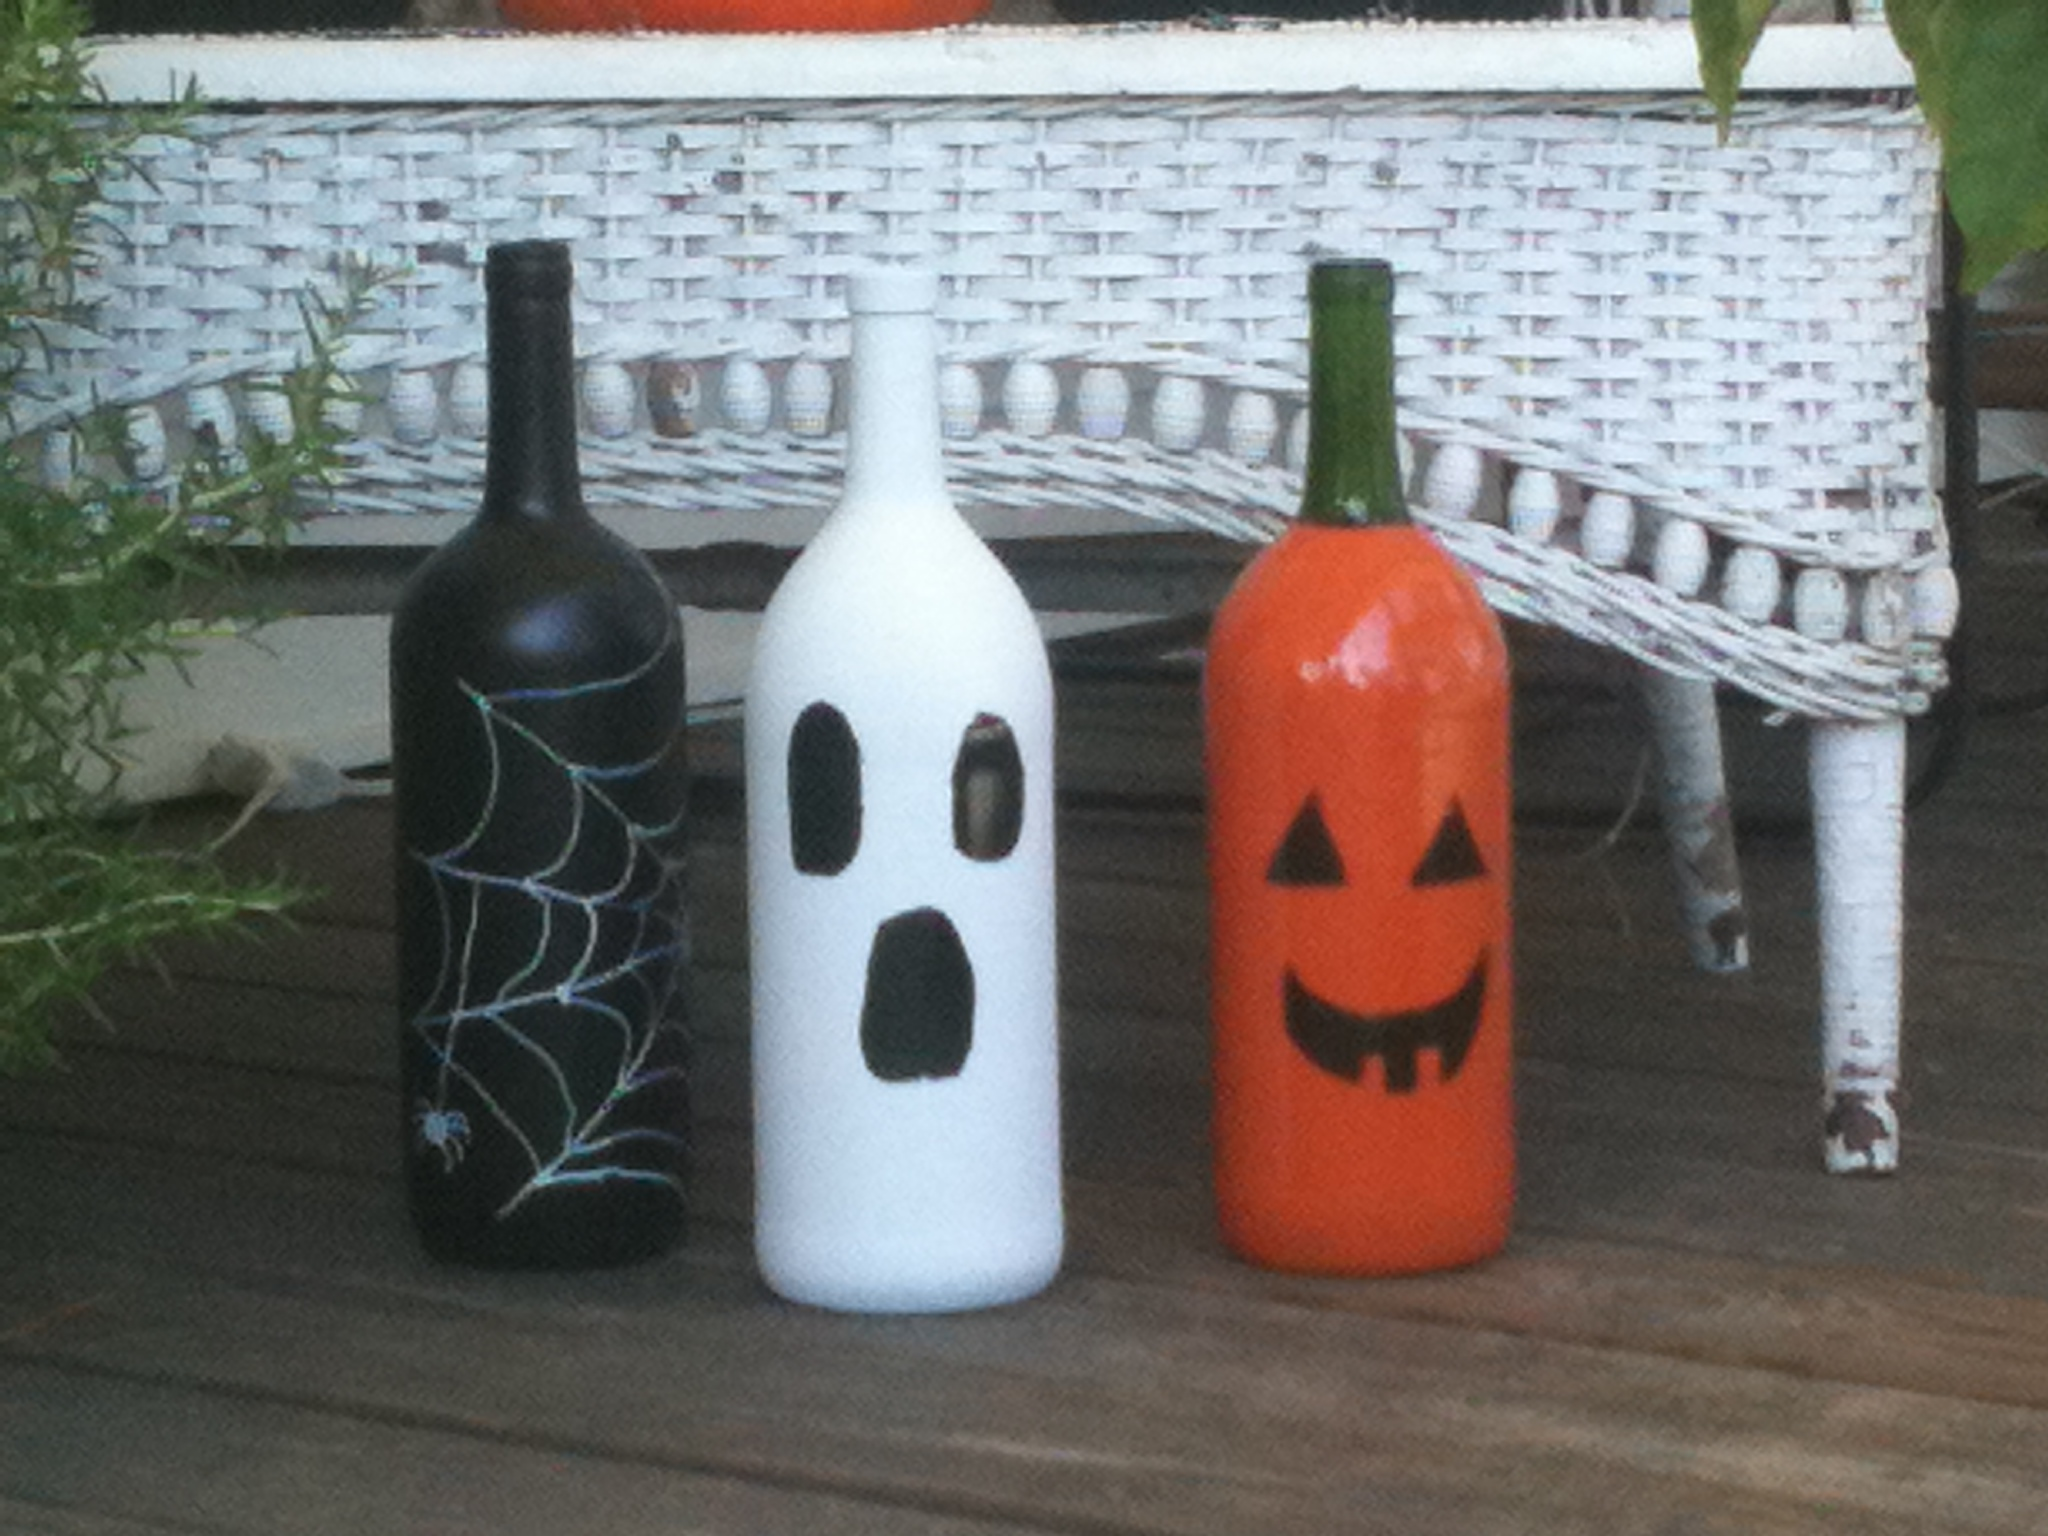 diy halloween decorations - Home Made Halloween Decorations